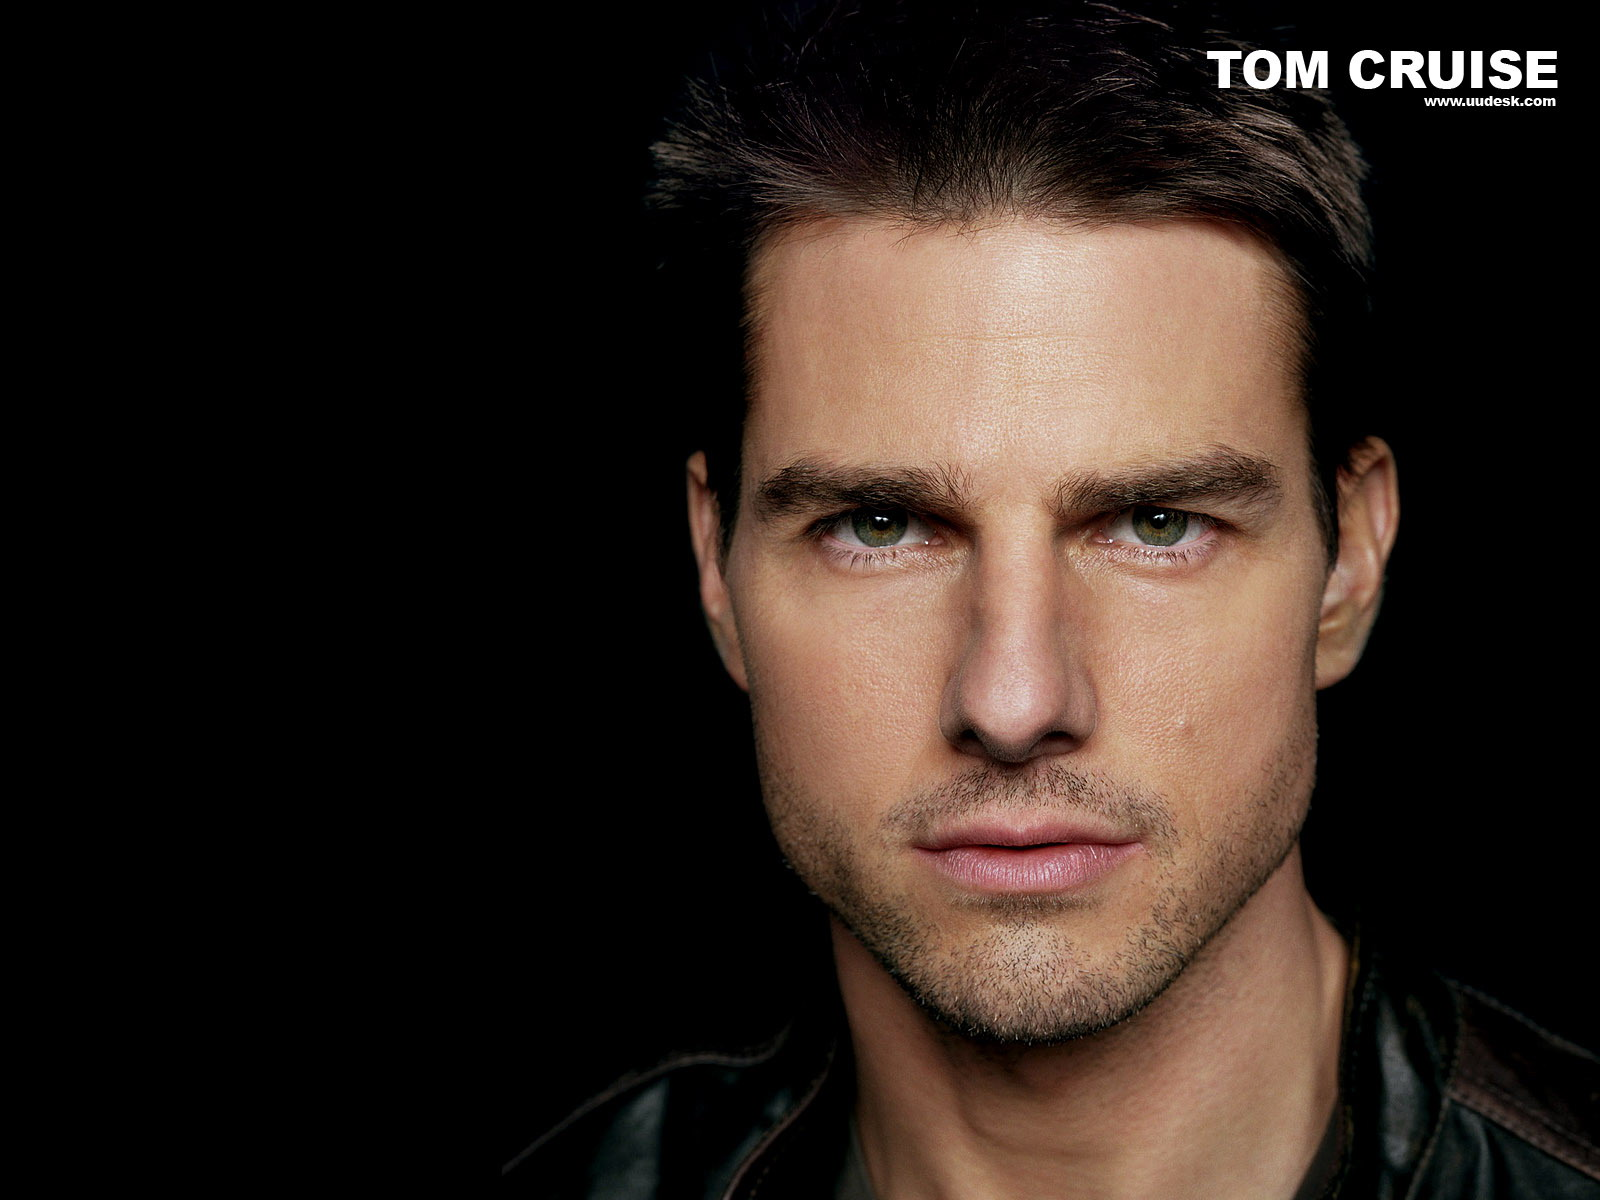 Tom Cruise Wallpaper 17 photo